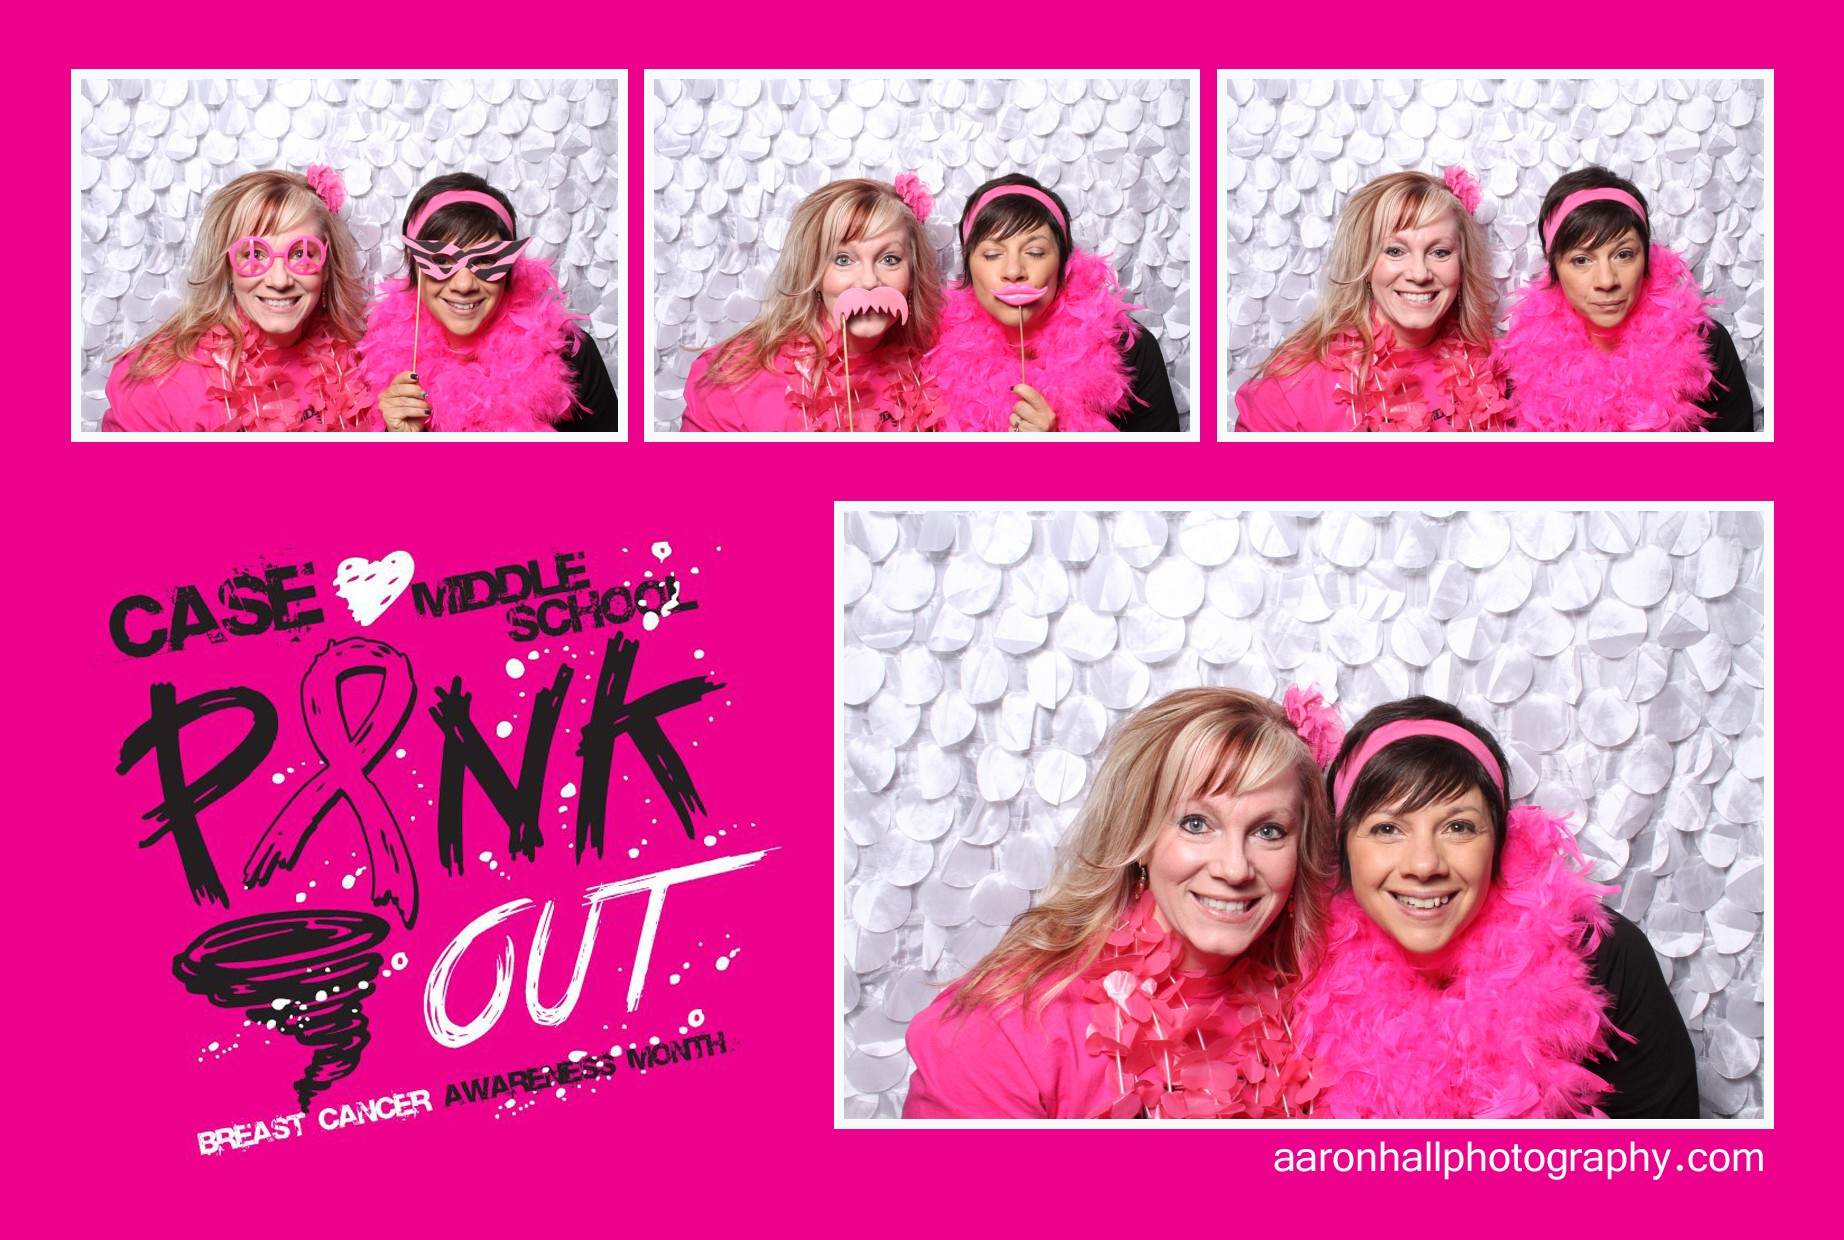 Photo Booth Case Middle School Watertown NY Pink